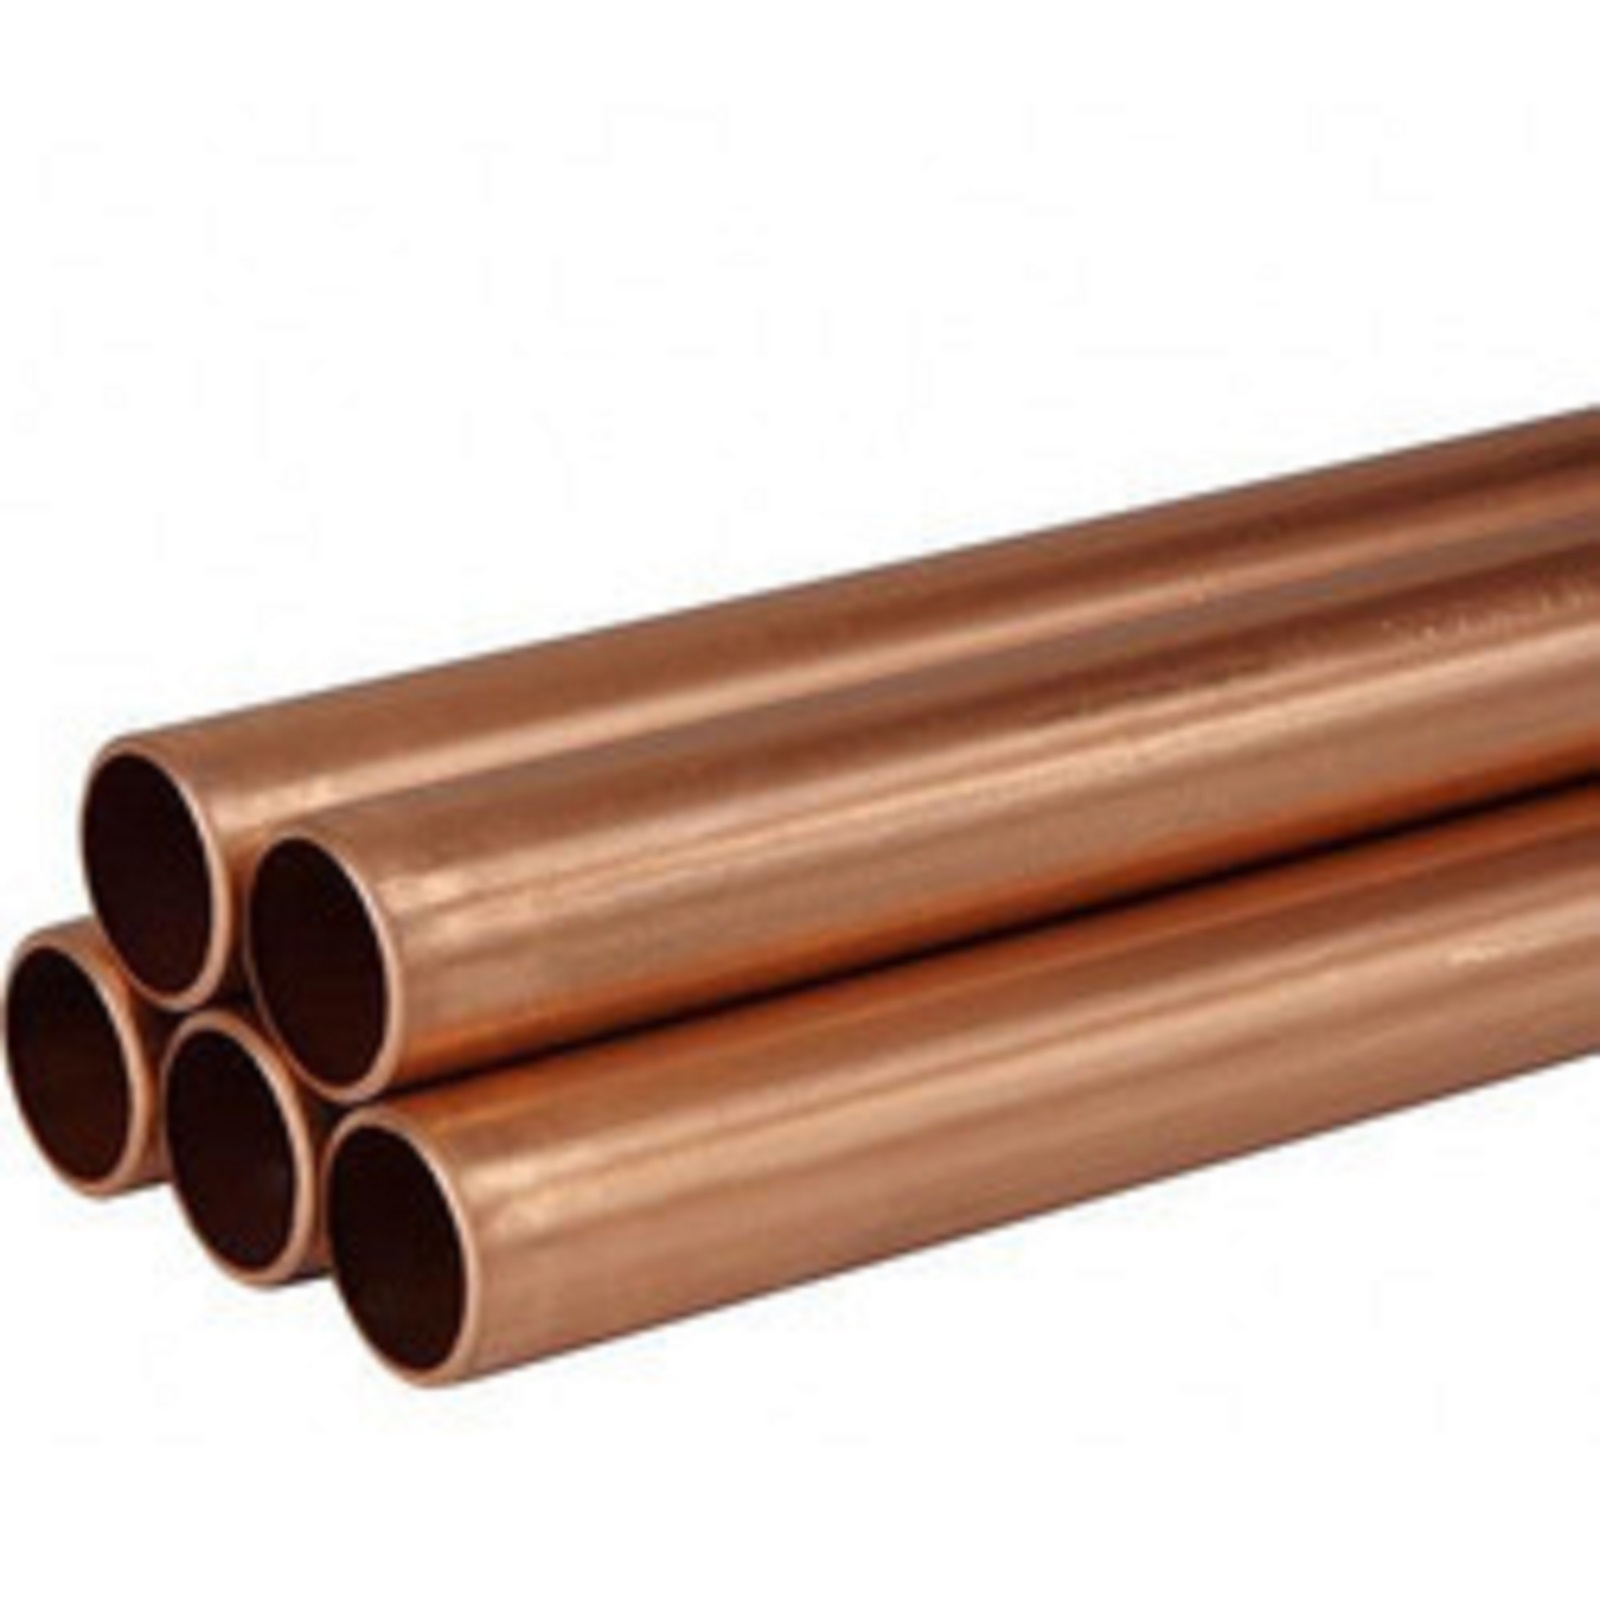 Copper Vs Pex Sharkbite For Diy Plumbing Pex Pipes Vs